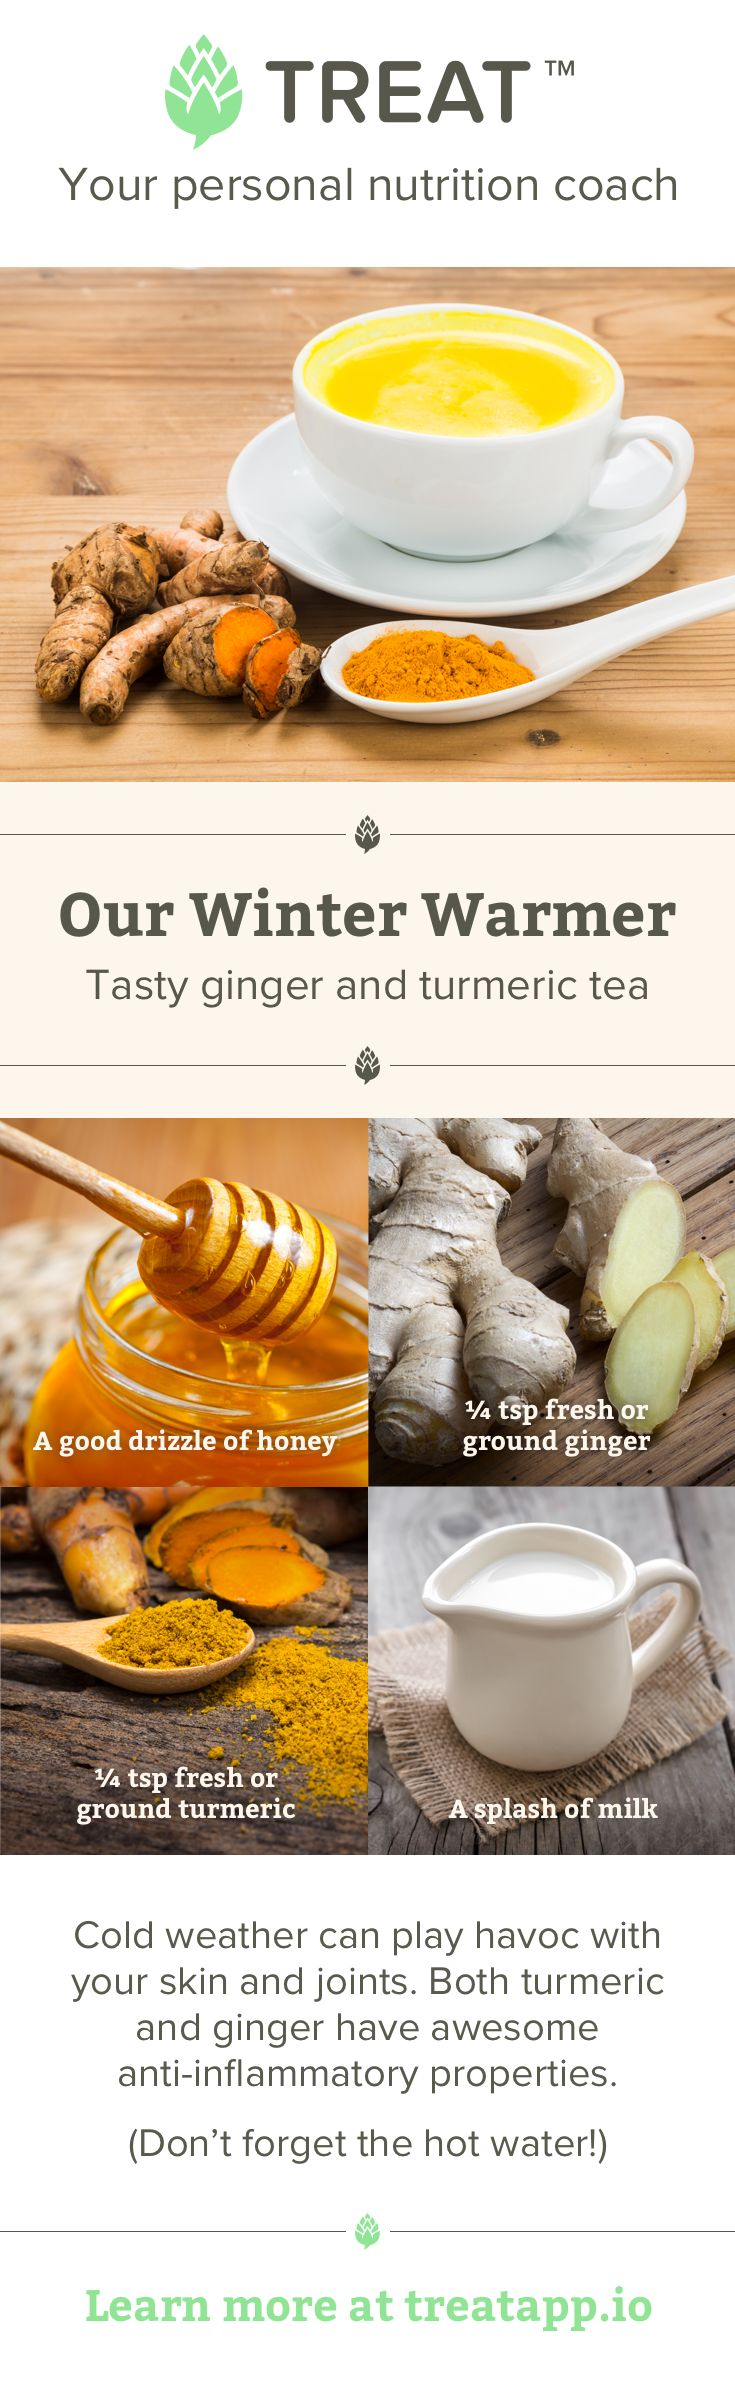 Turmeric and ginger both have natural anti-inflammatory properties and on a cold day, this cup of tea will warm you up from the inside and out, it's also great for the digestion.